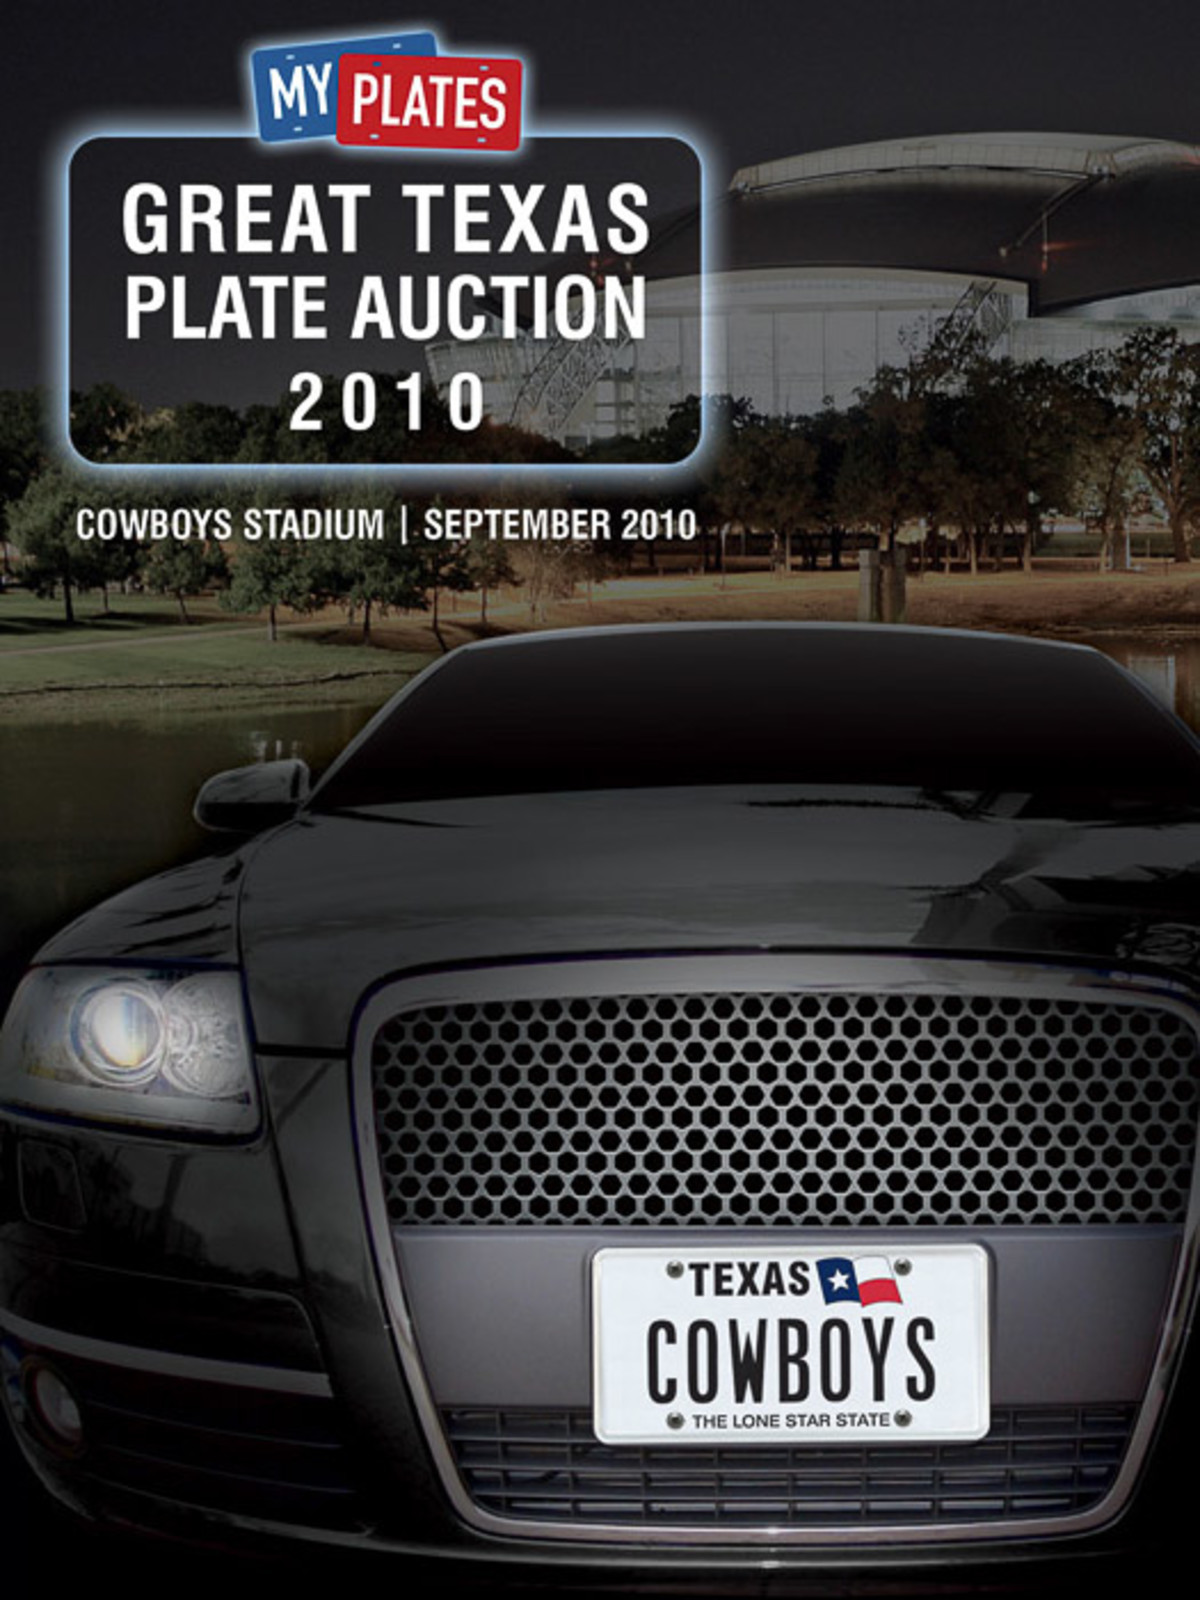 My Plates Texas >> License To Bid Texas Vanity Plates Could Go For Millions In First